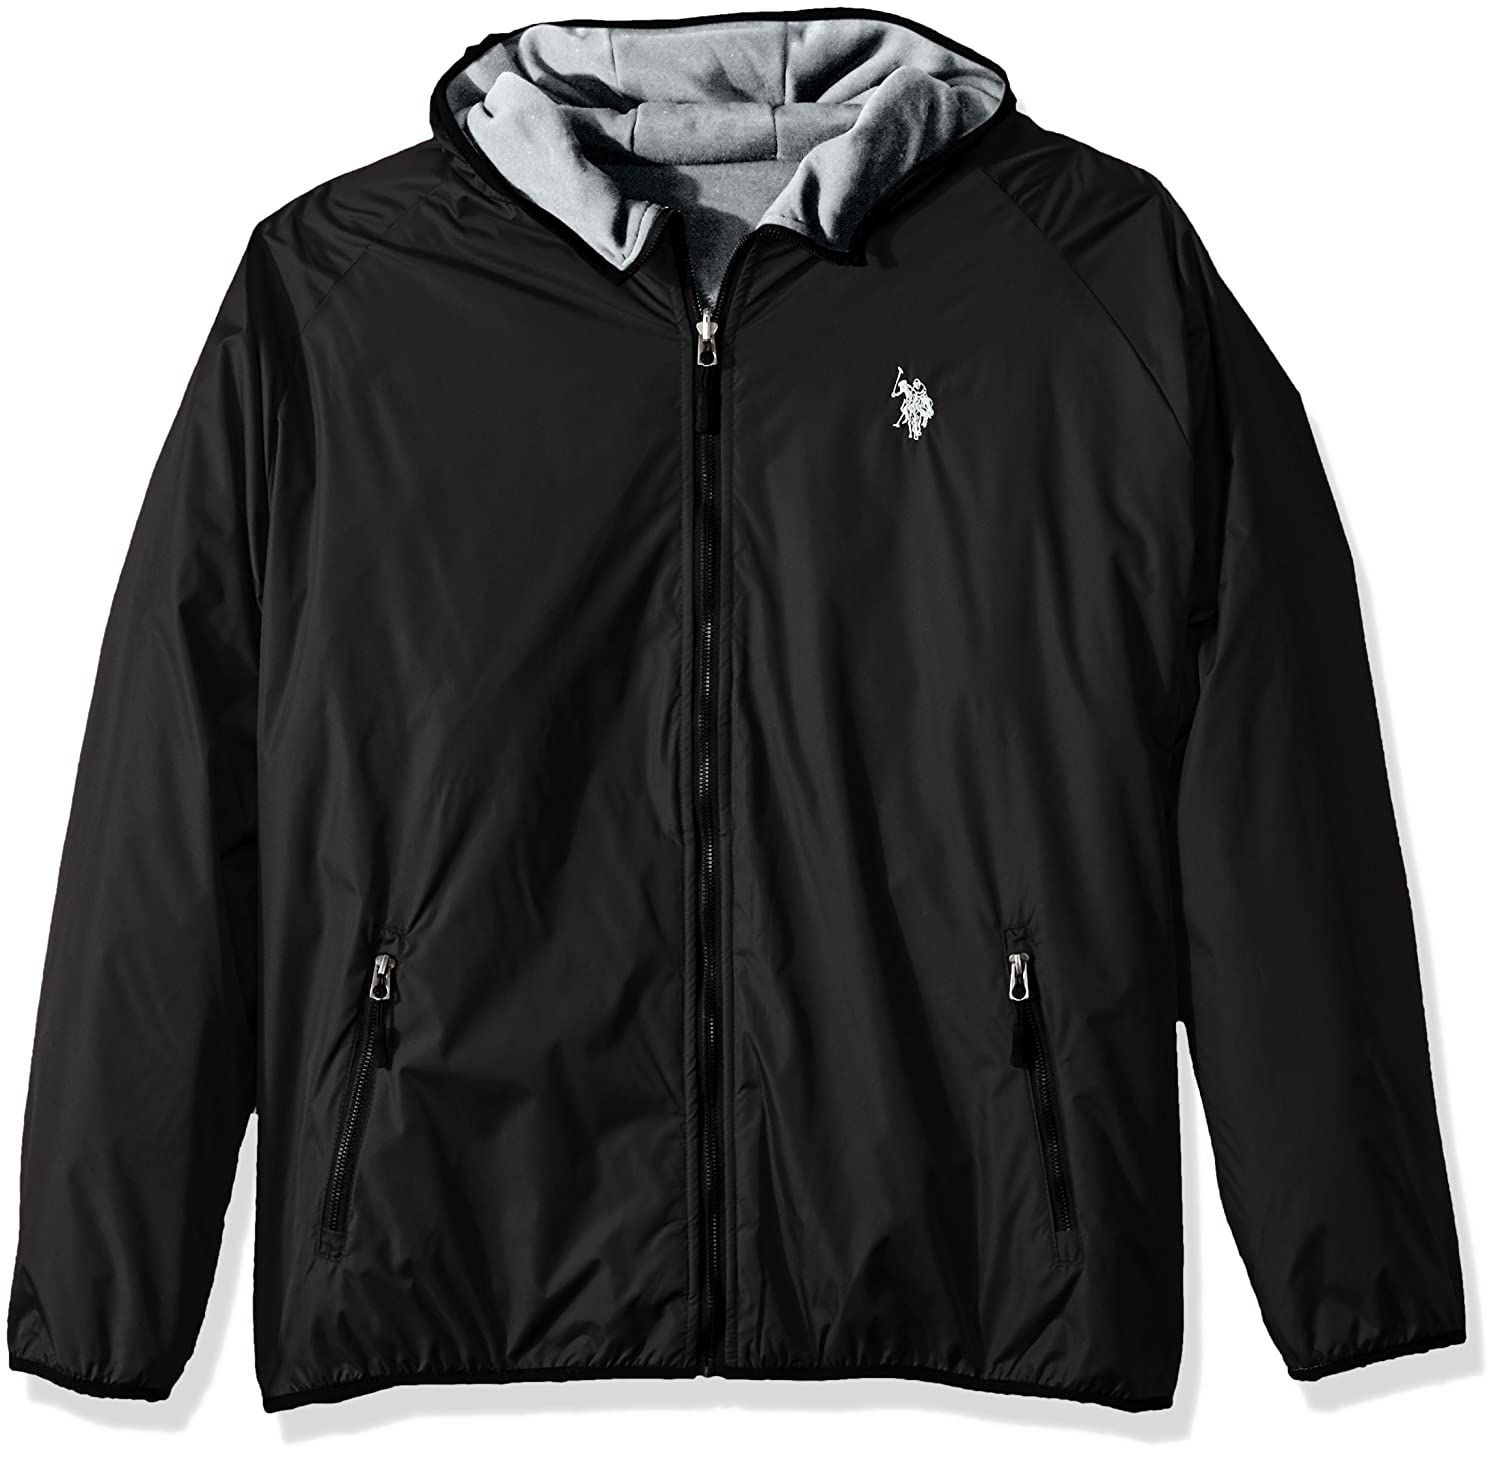 U.S. Polo Assn. OUTERWEAR メンズ B073694X37 4X Big|Black 9029 Black 9029 4X Big